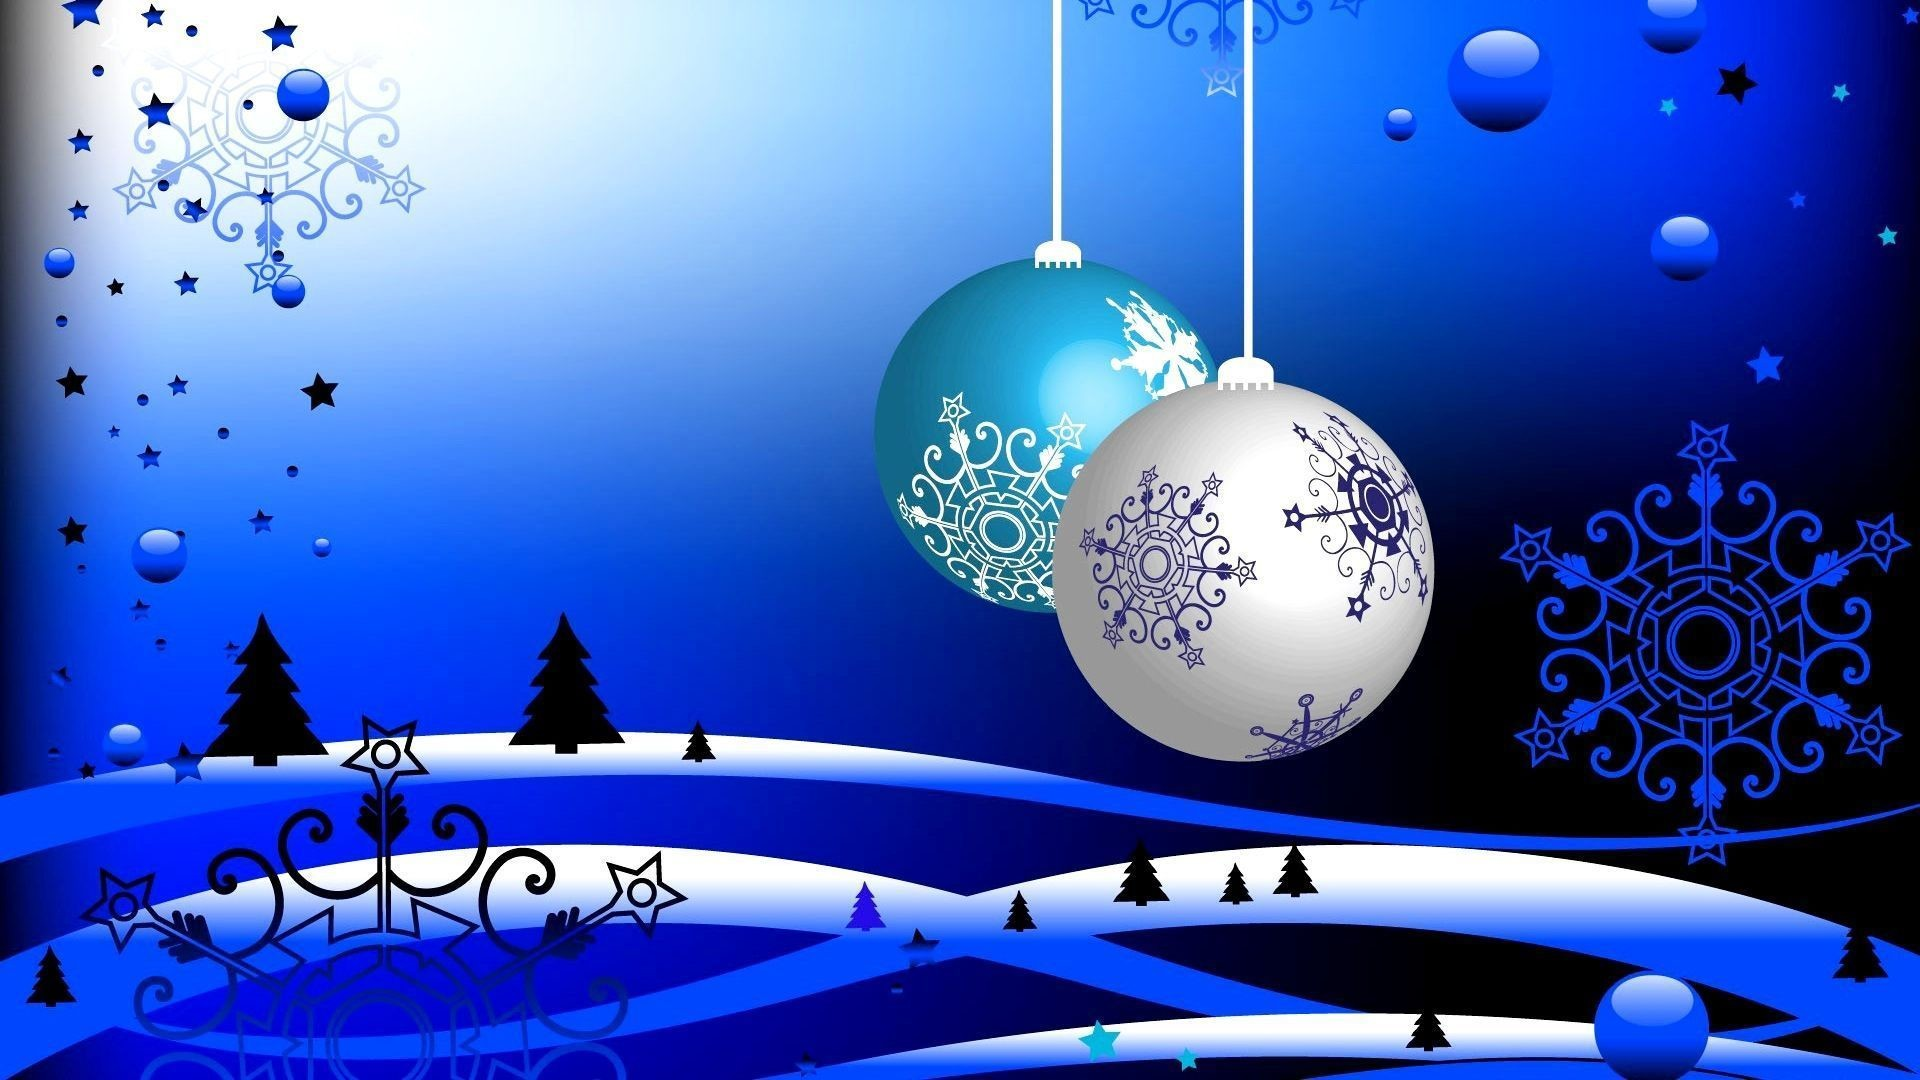 Res: 1920x1080, Animated Desktop Backgrounds Blue Christmas Wallpaper photos of .